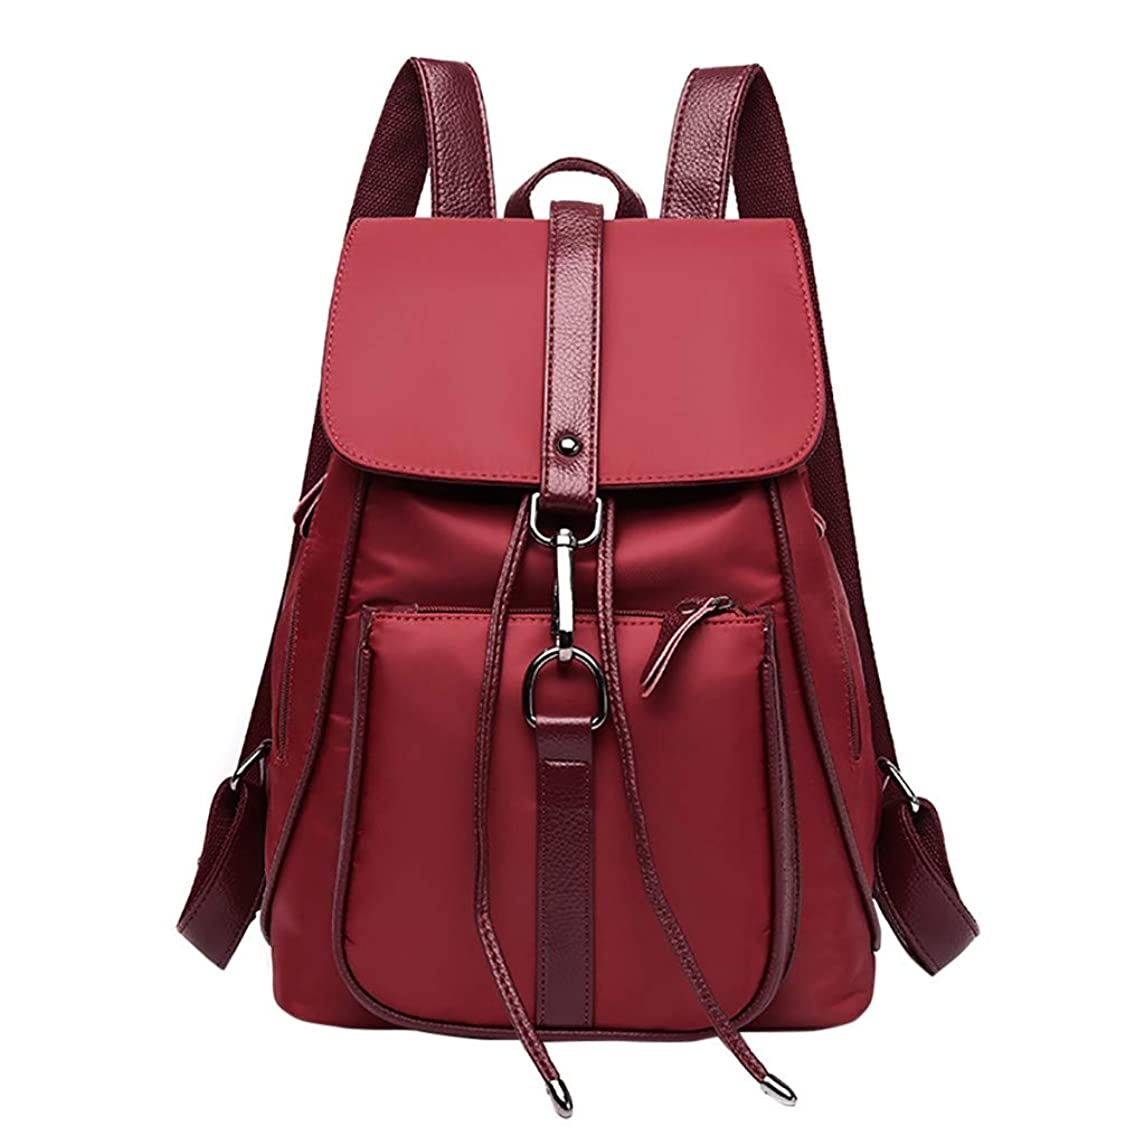 WEI MOLO Fashion Women's Simple and Versatile Backpack Newest Cool Leisure Travel Casual Hiking Travel Daypack Backpacks